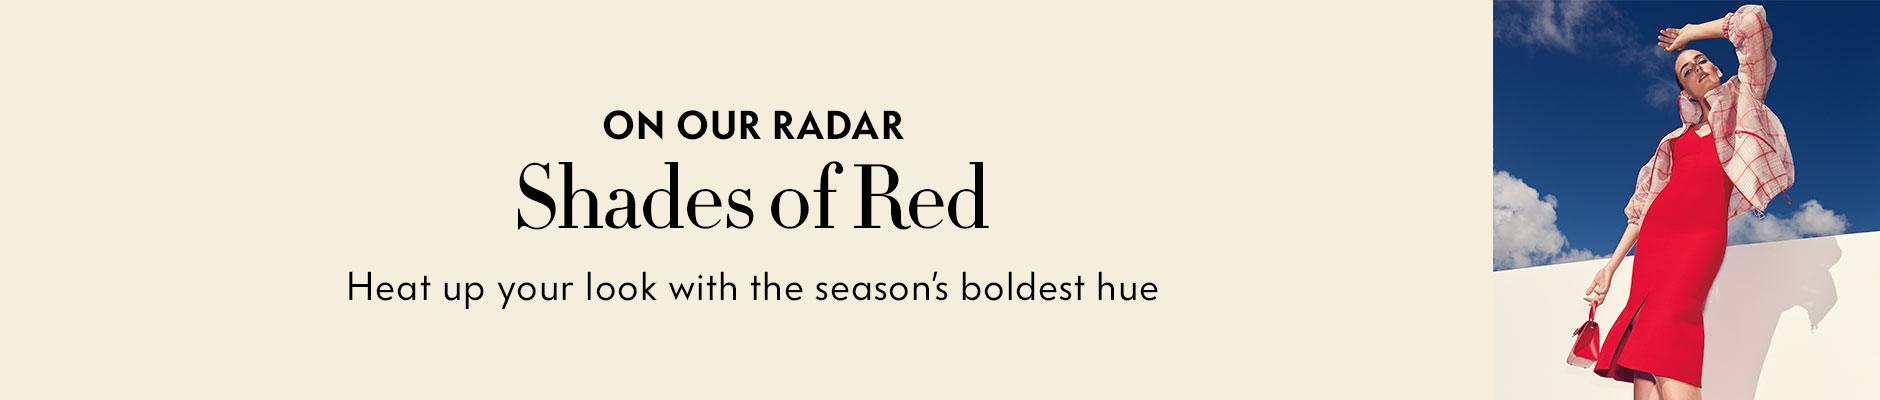 On our radar - shades of red, heat up your look with the season's boldest hue